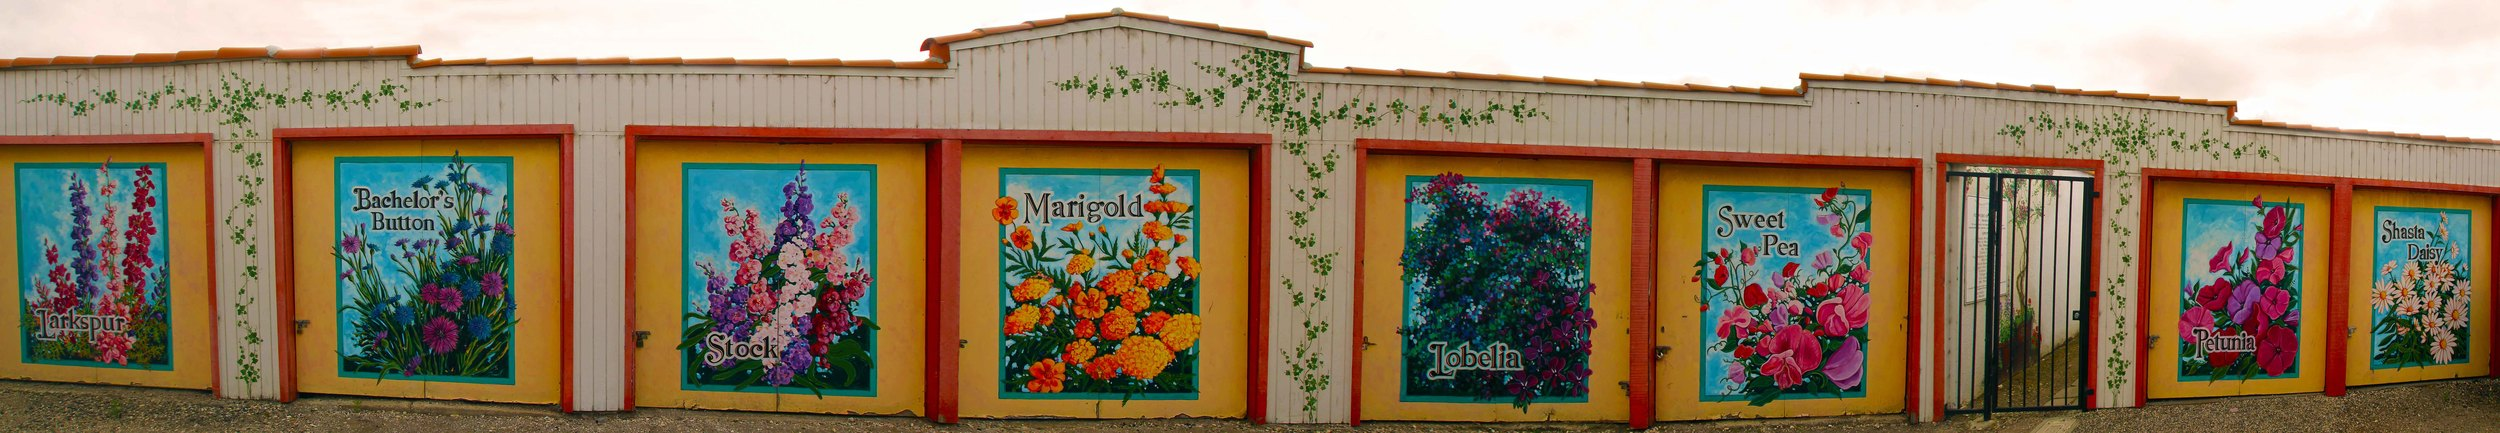 Colorful murals such as this can be found throughout the charming town of Lompoc.